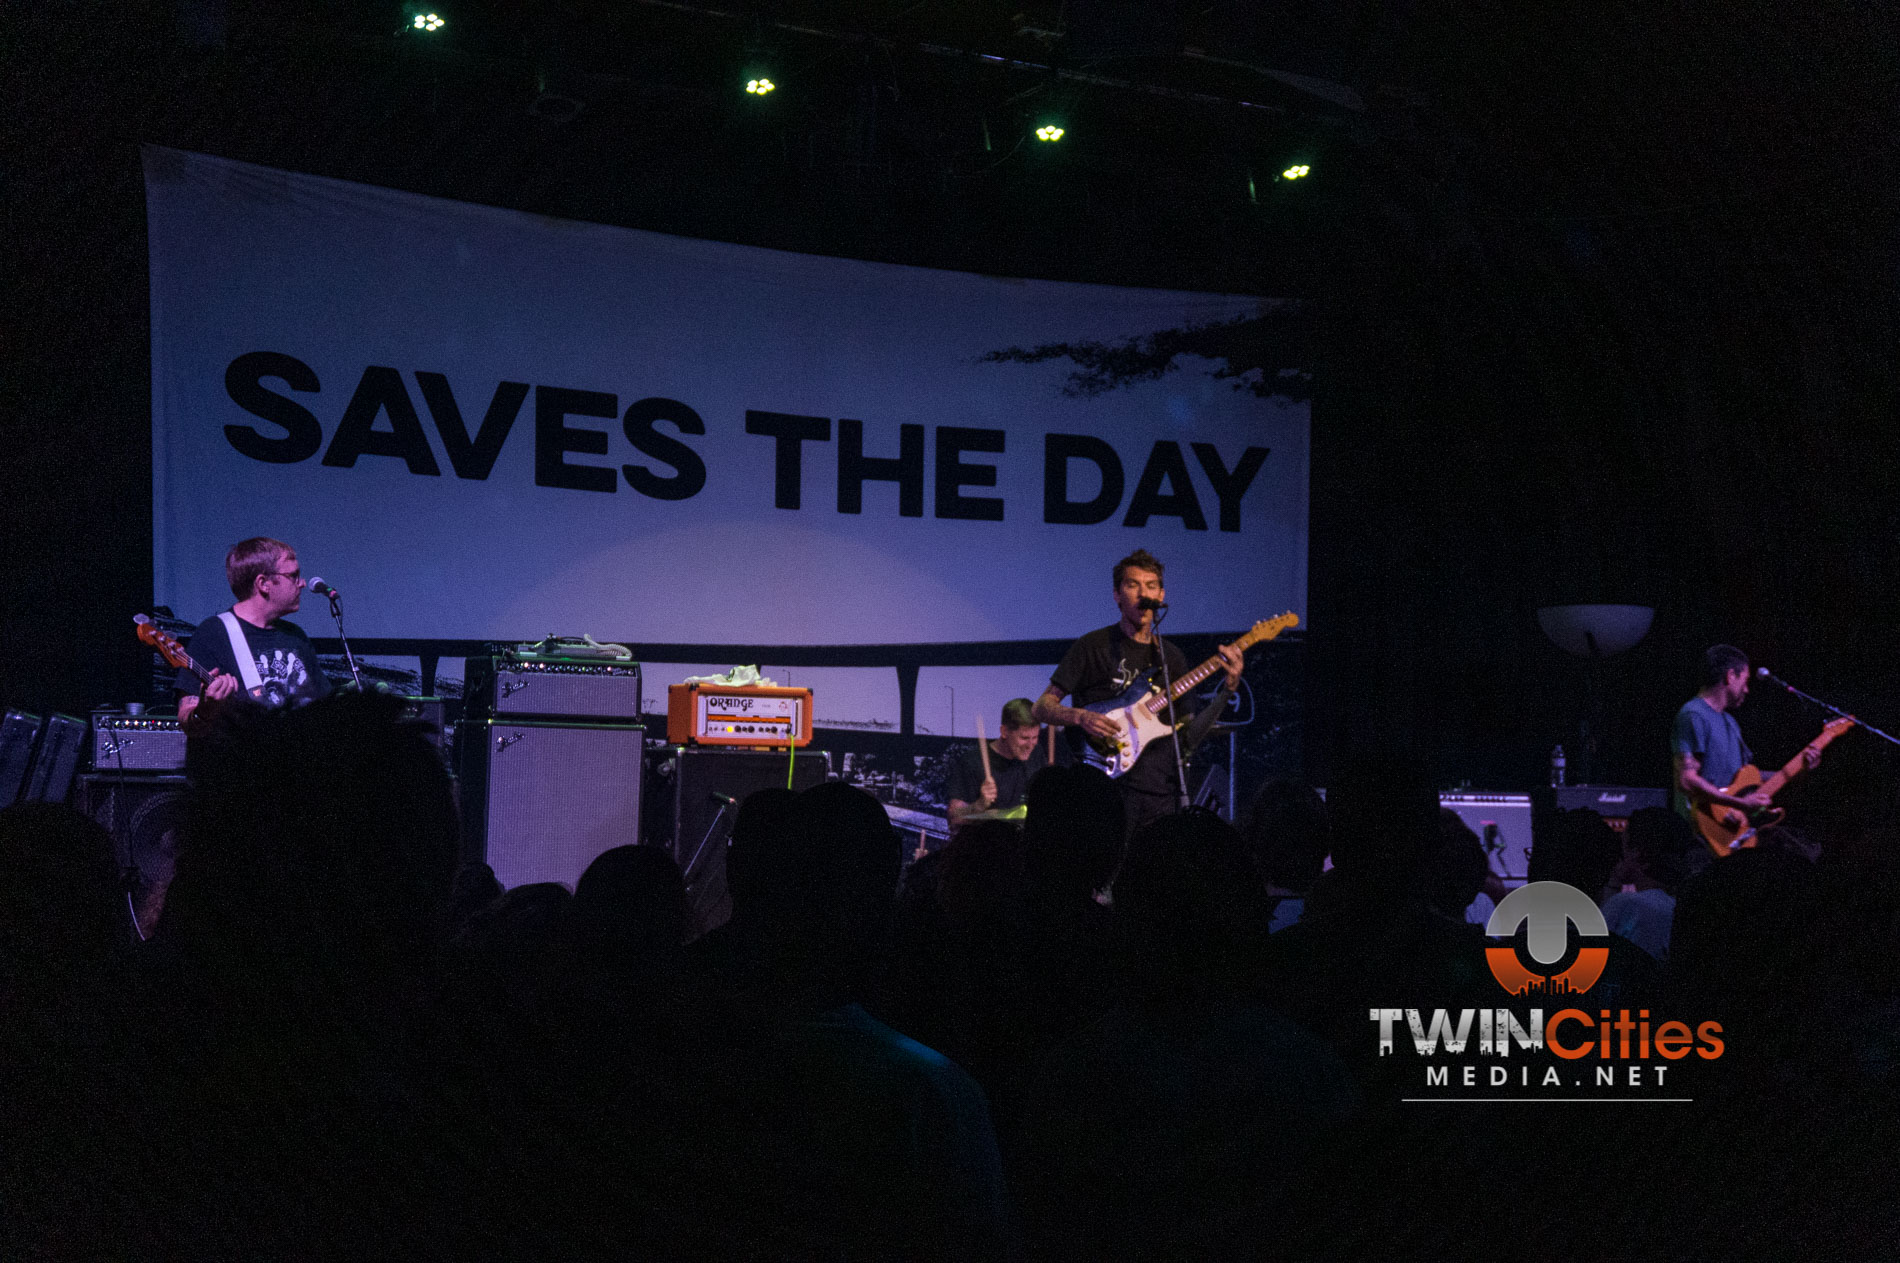 Saves-the-day-2